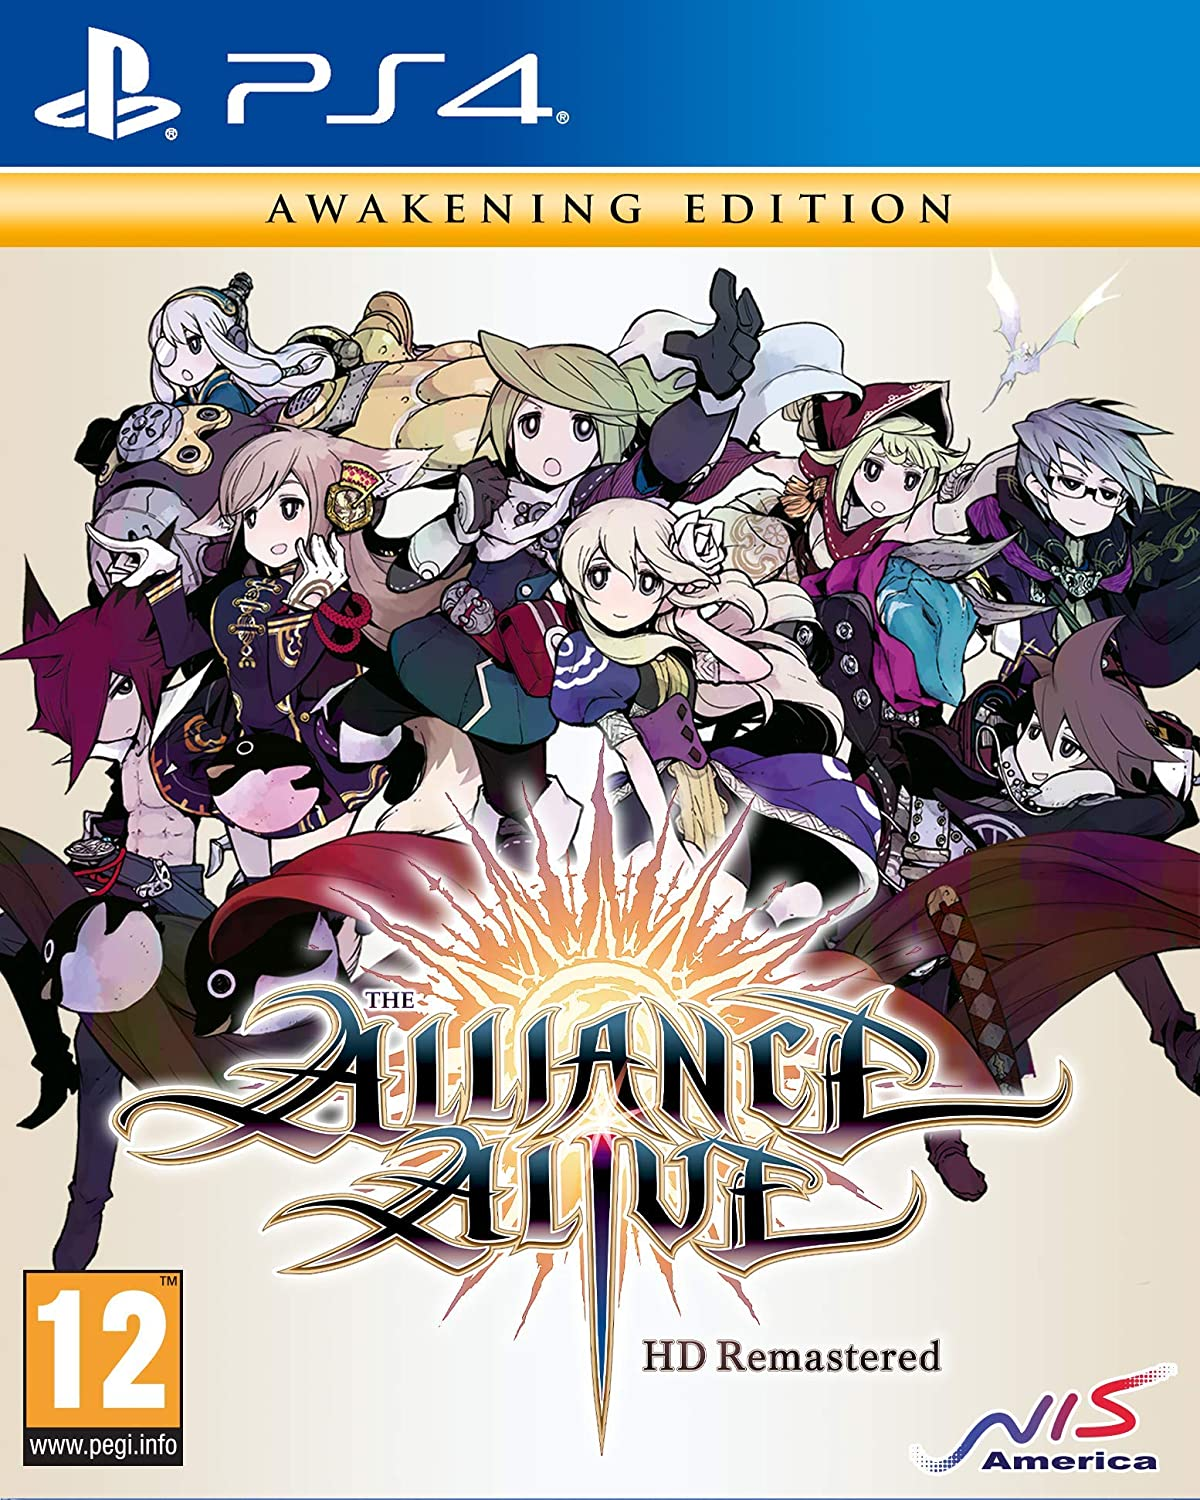 The Alliance Alive HD Remastered (Awakening Edition) (PS4)